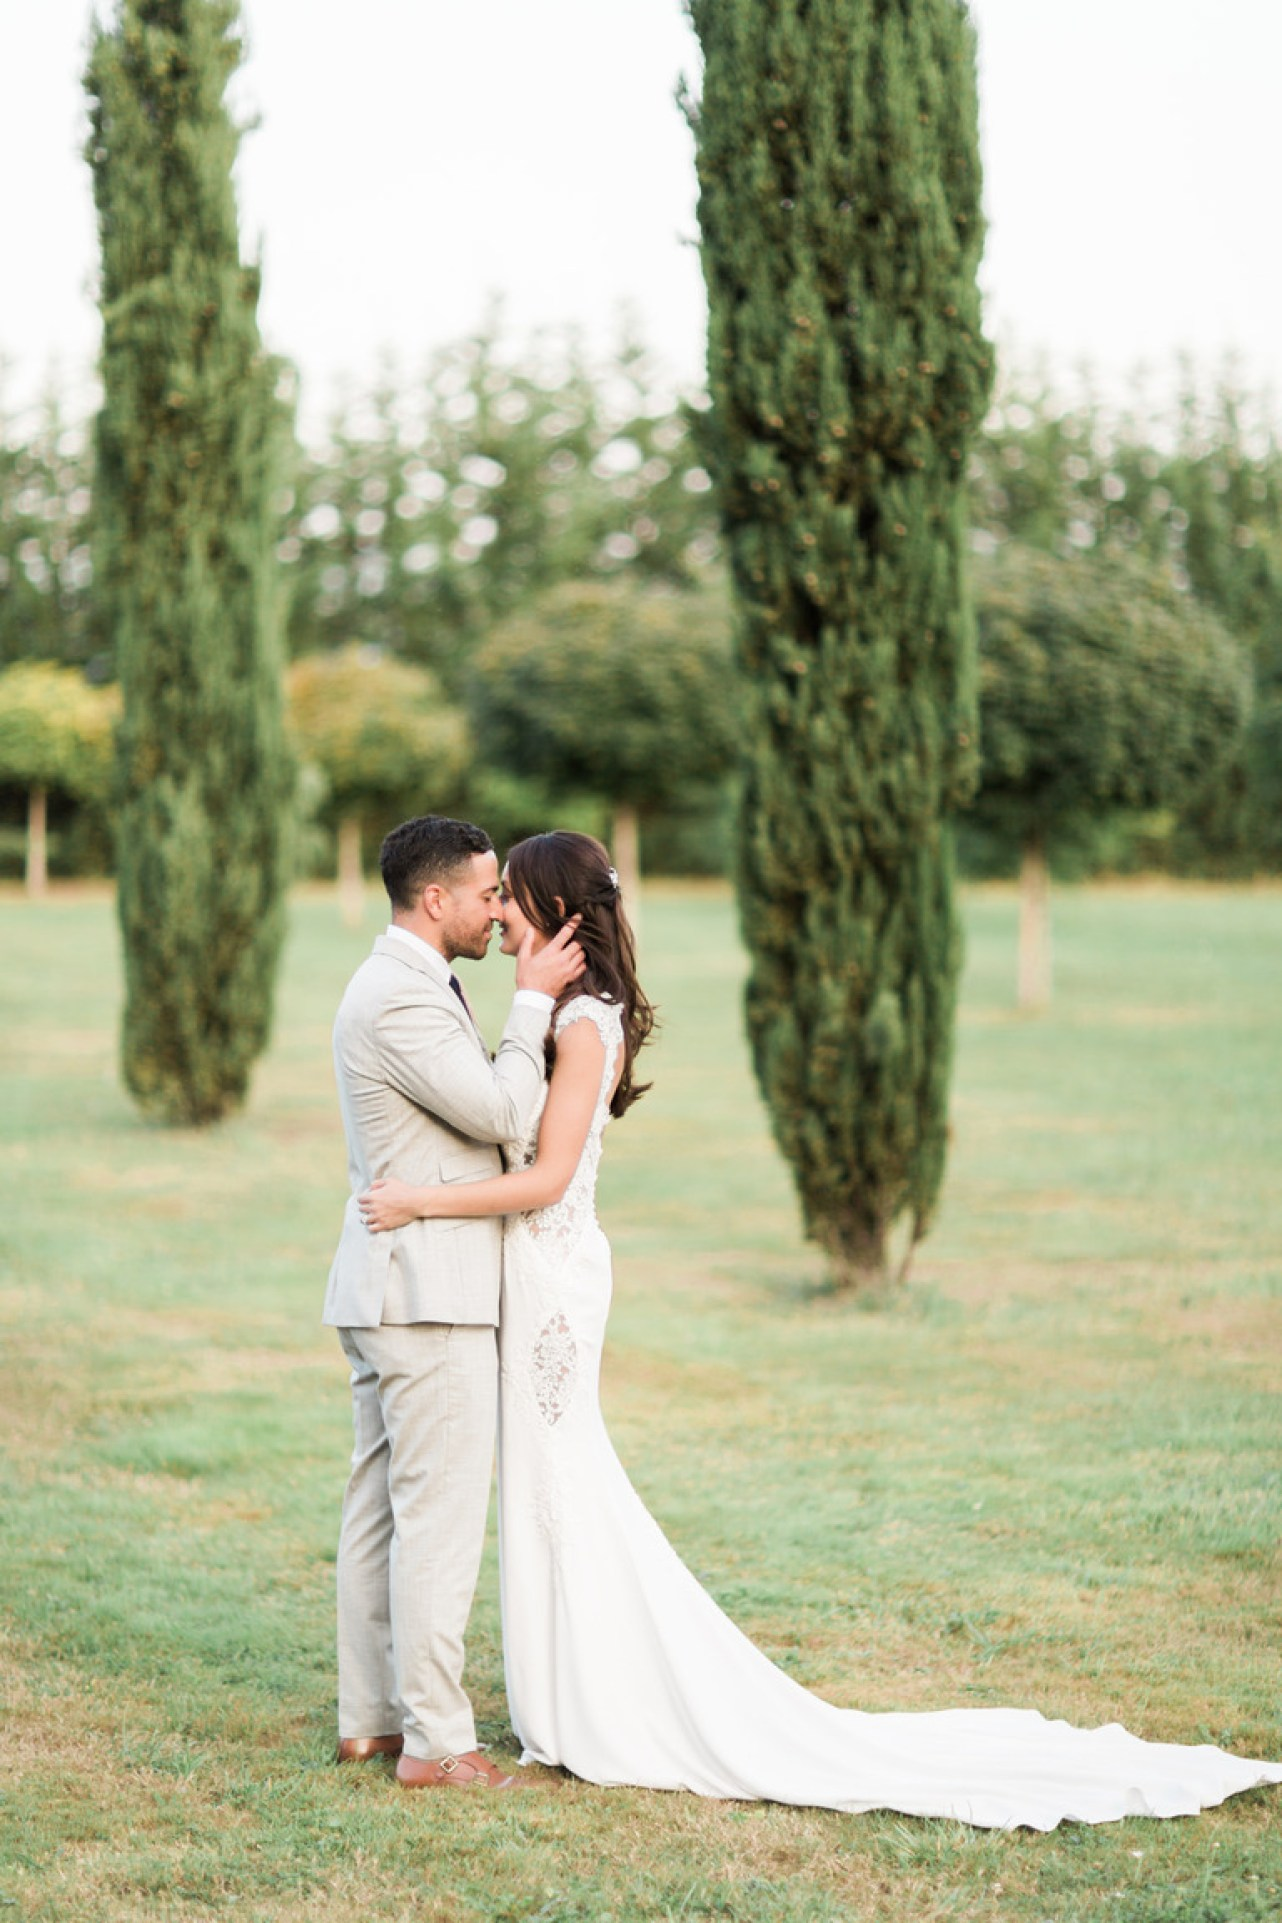 Wedding Couple at Chateau la Durantie in France